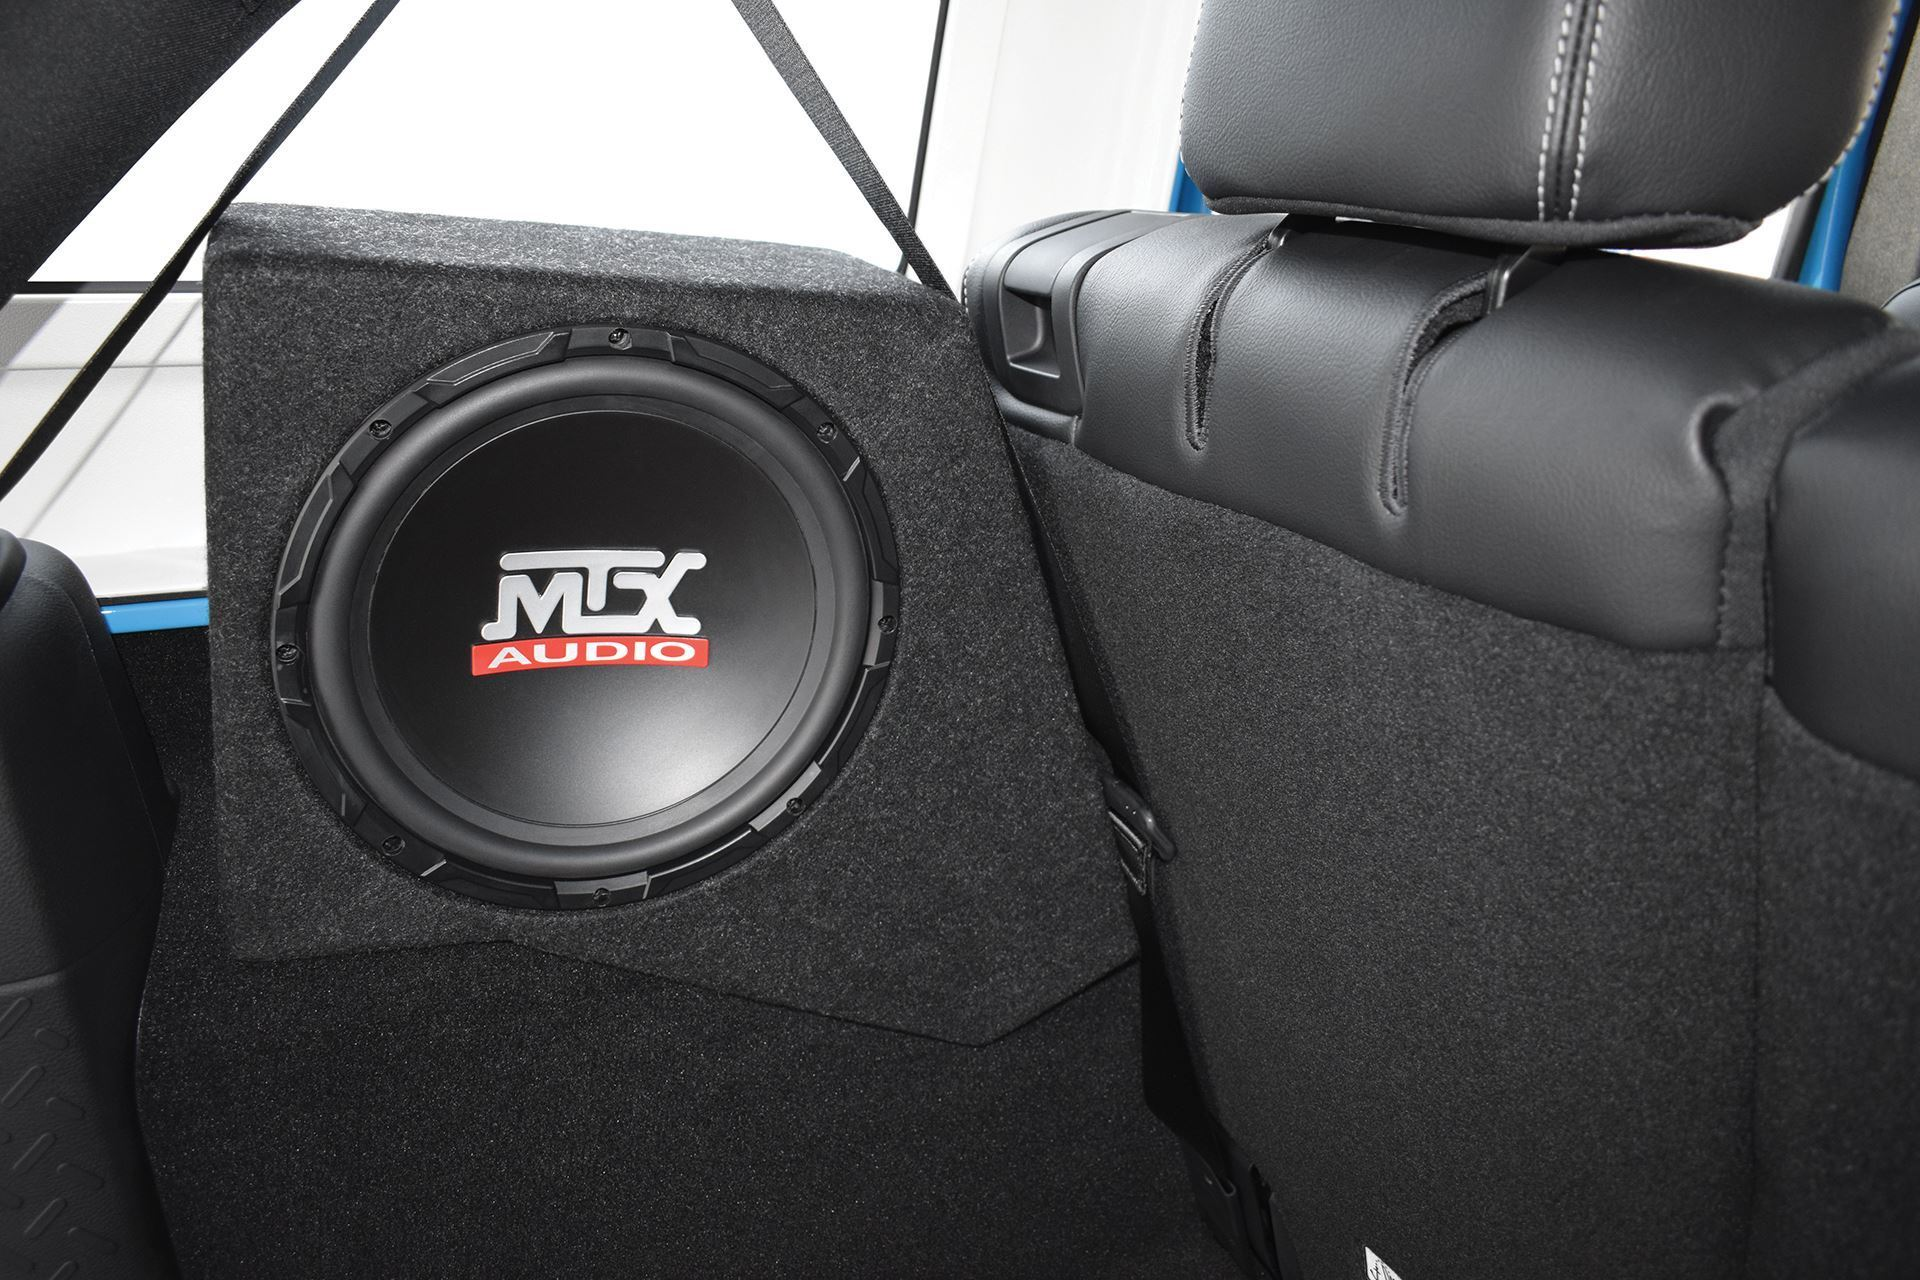 jeep wrangler jk 2007 2016 thunderform custom subwoofer enclosure rh mtx com jeep wrangler jk subwoofer box plans jeep wrangler jk 4 door subwoofer box